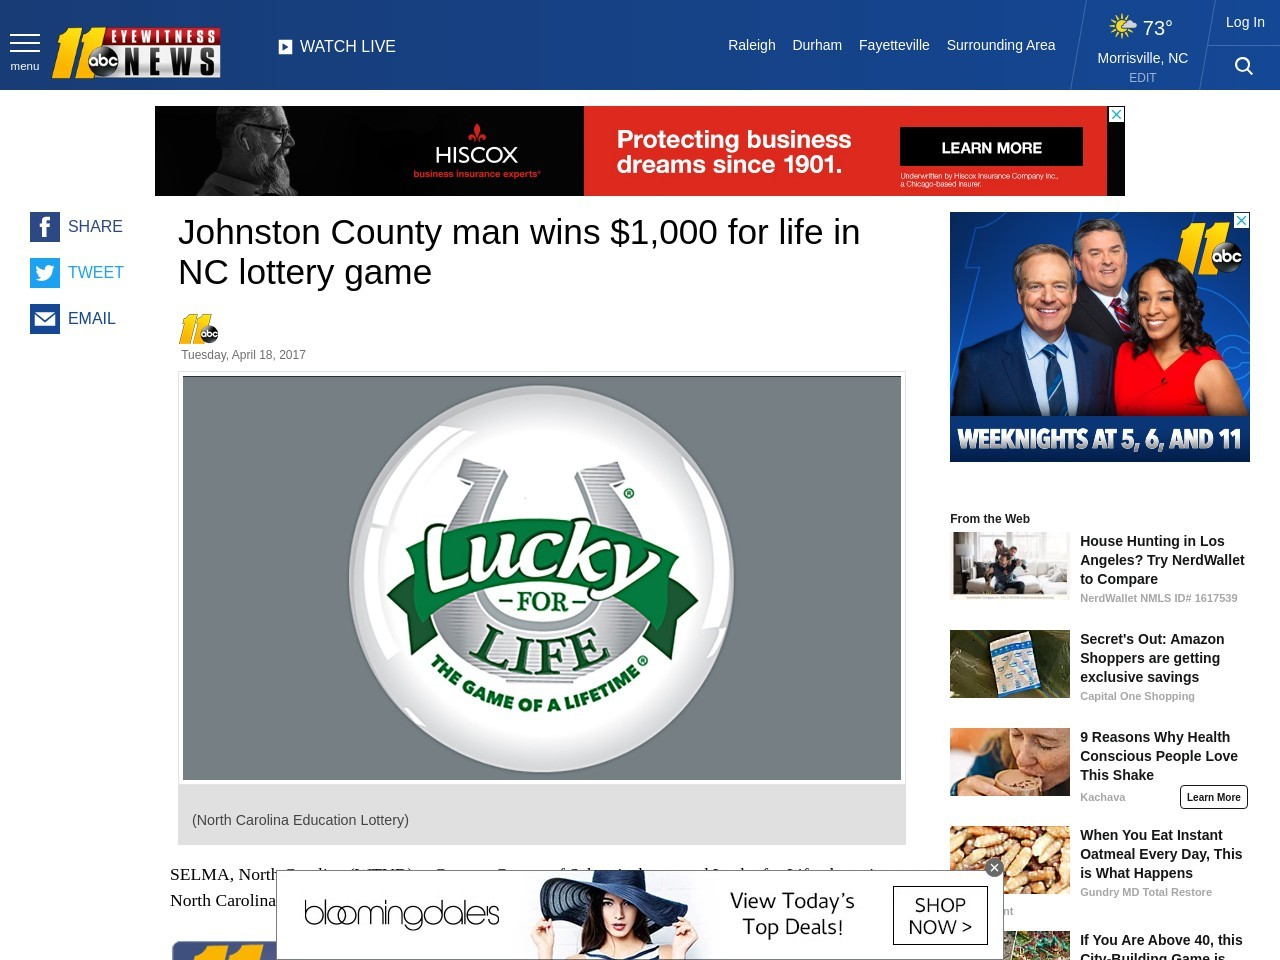 Johnston County man wins $1,000 for life in NC lottery game